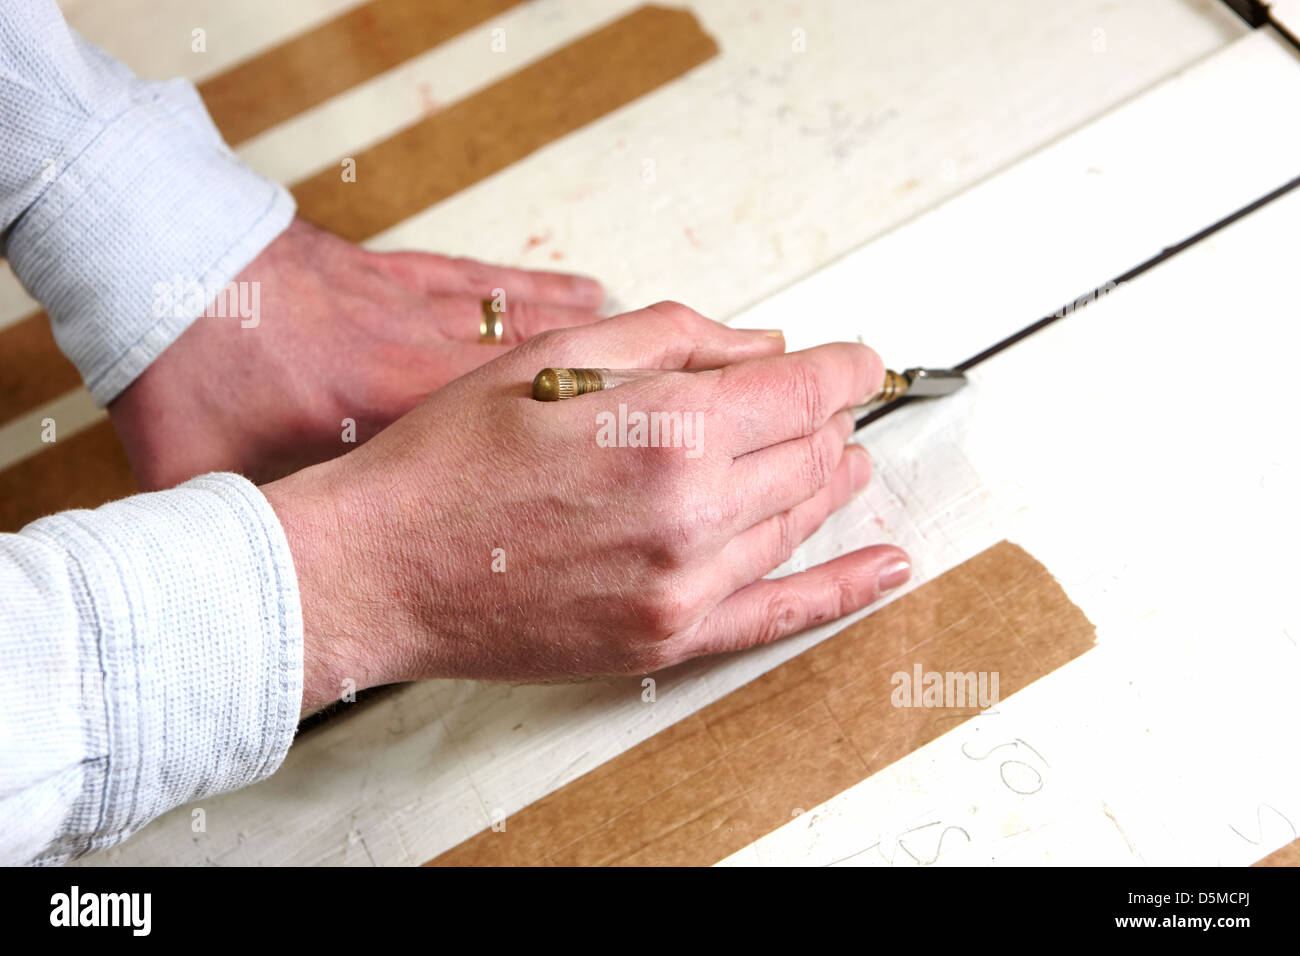 framer cutting glass by hand in a framing workshop - Stock Image